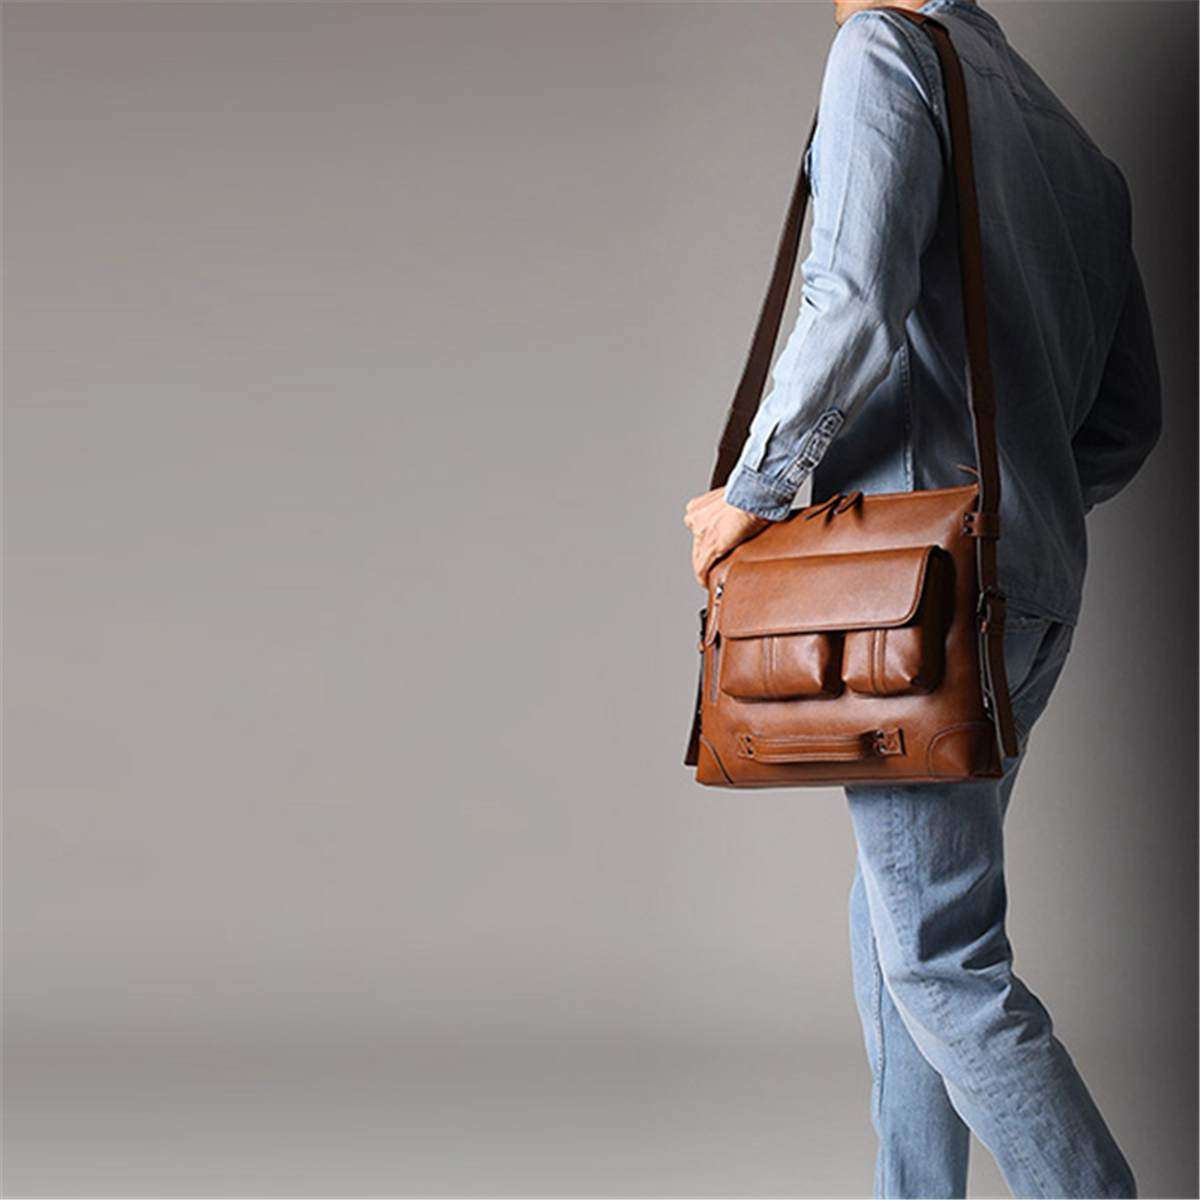 a guy walking with a leather shoulder bag